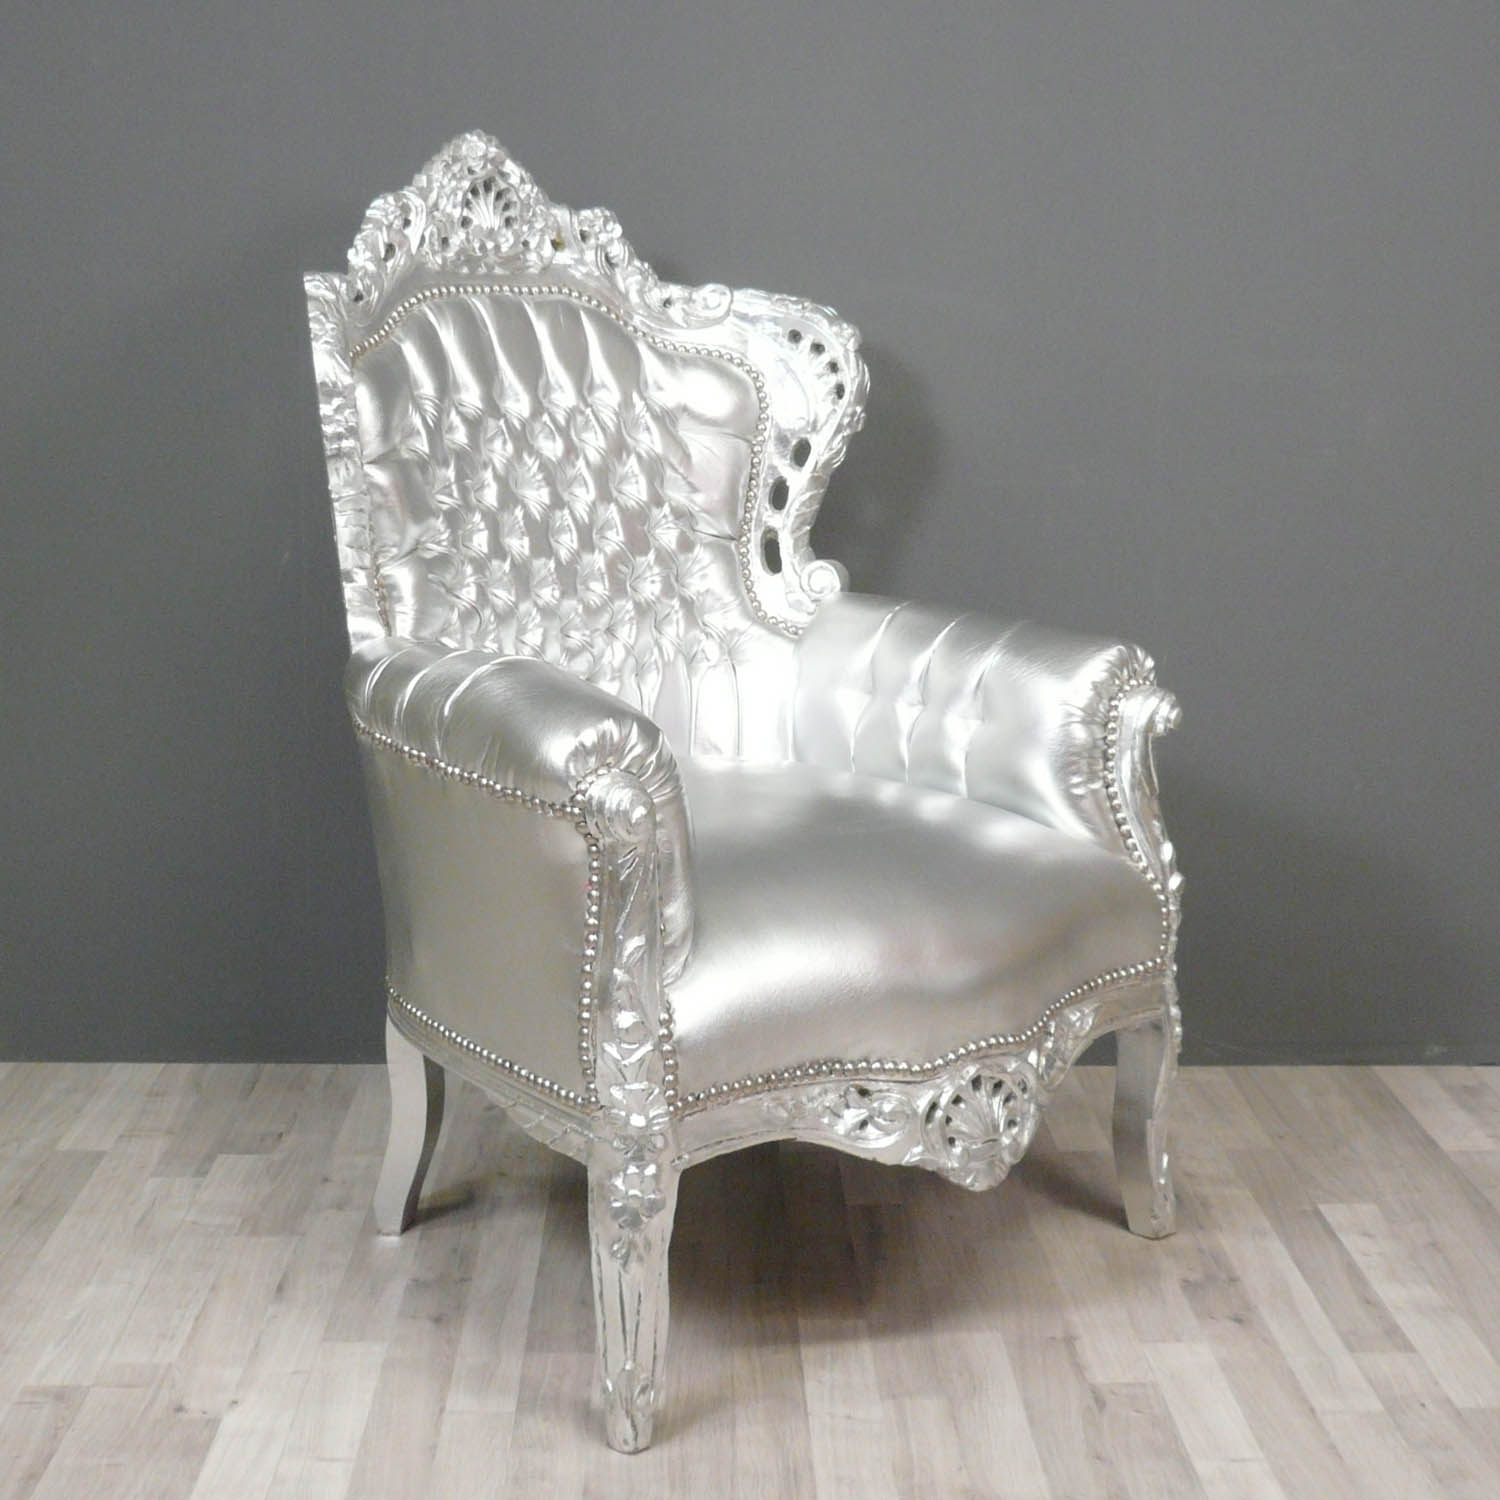 fauteuil baroque argent fauteuils baroques. Black Bedroom Furniture Sets. Home Design Ideas